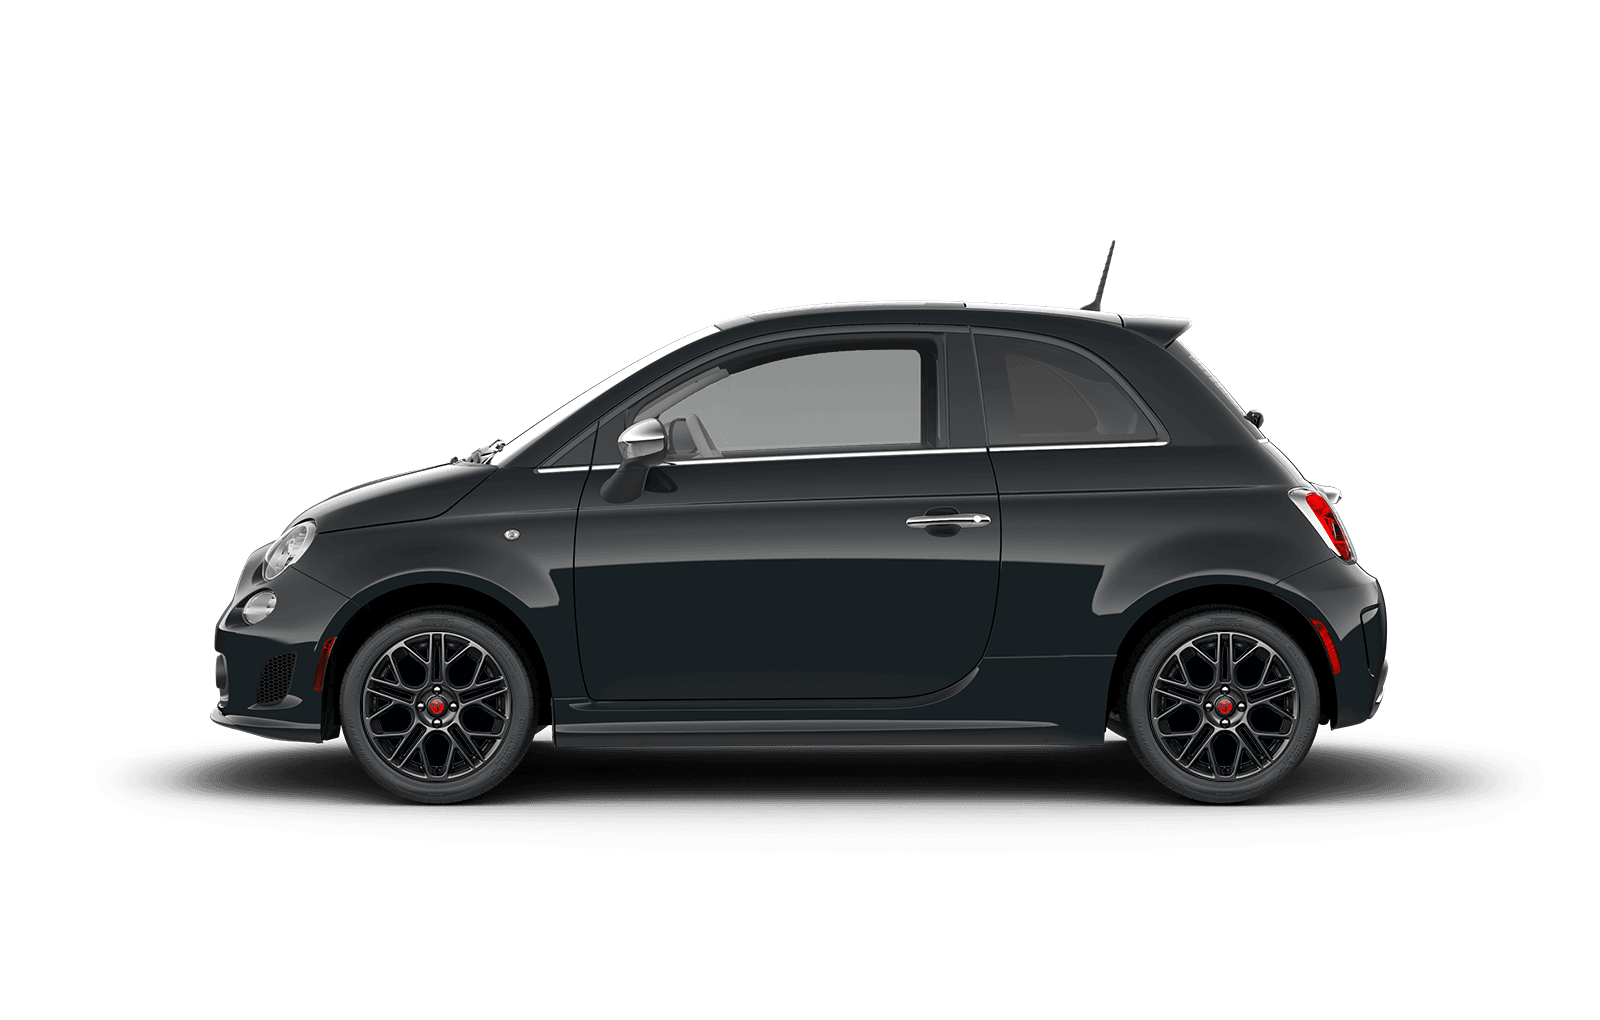 16-Inch Hyper Black Aluminum Available on Pop and Pop Cabrio